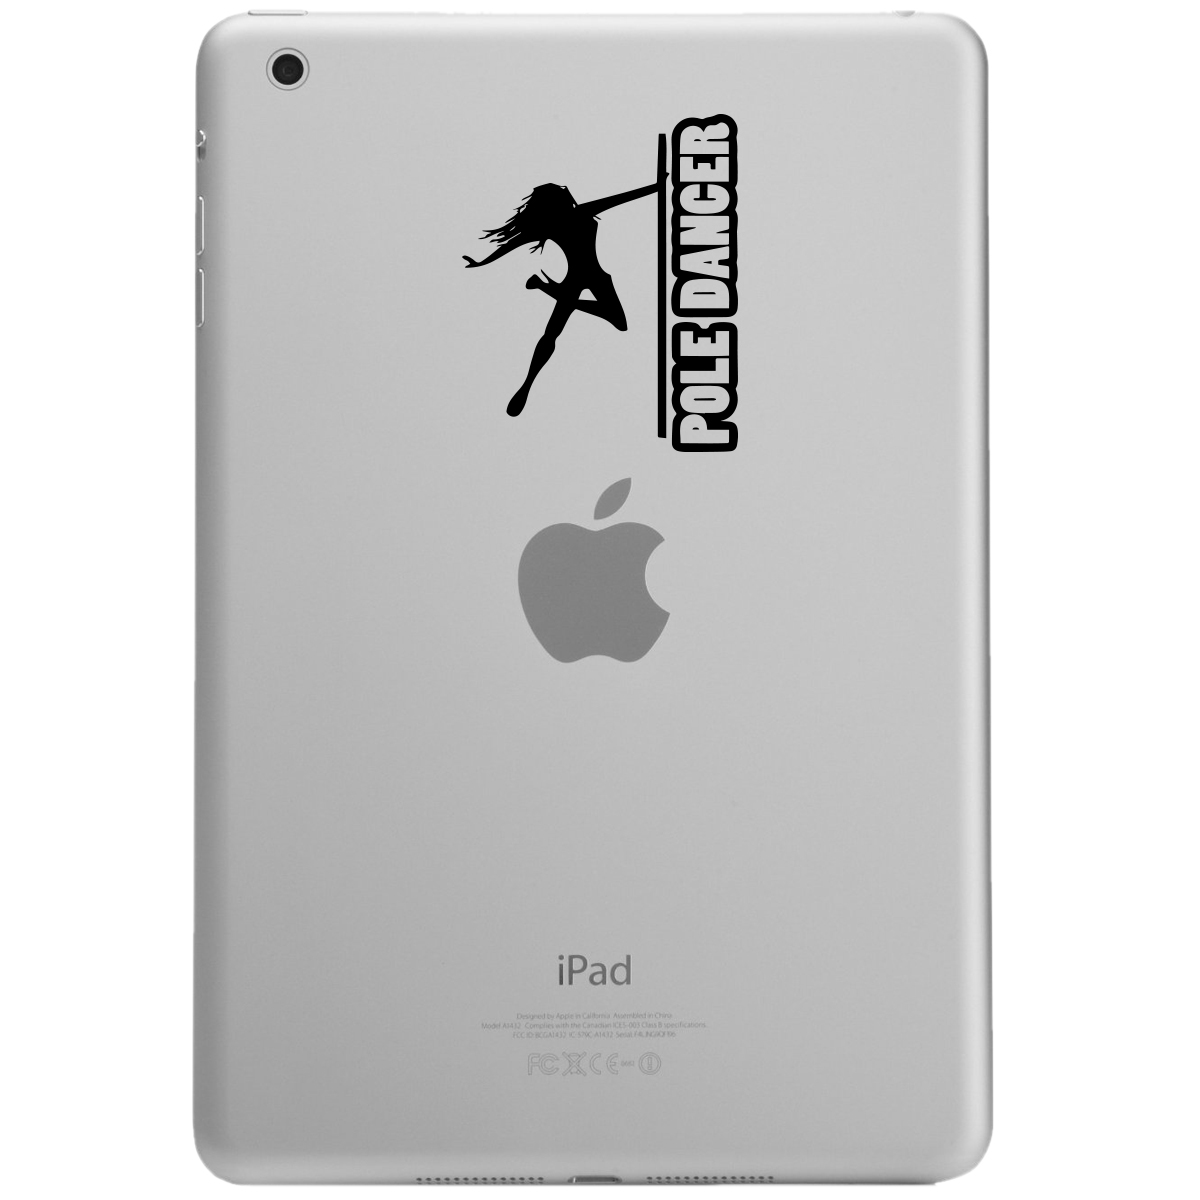 Sexy Pole Dancer Girl Silhouette iPad Tablet Vinyl Sticker Decal